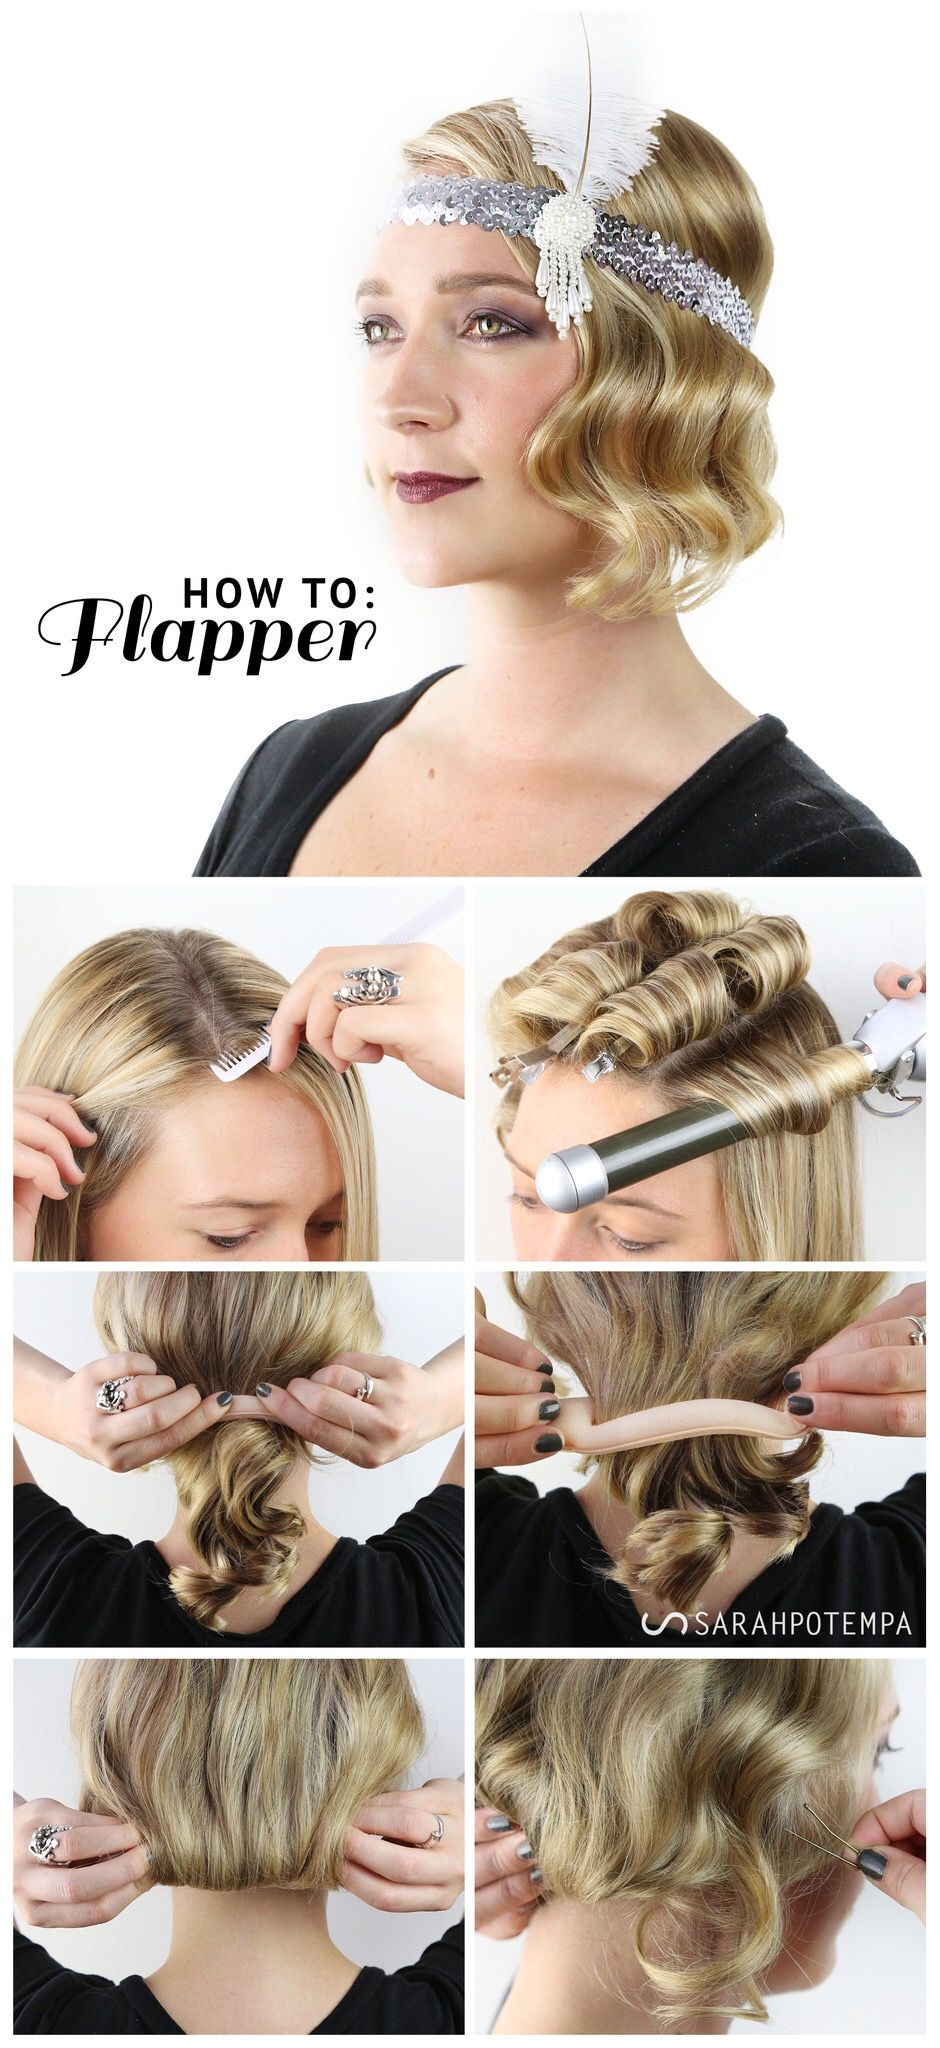 pin by kate on hairspray and bobbypins in 2019 | flapper